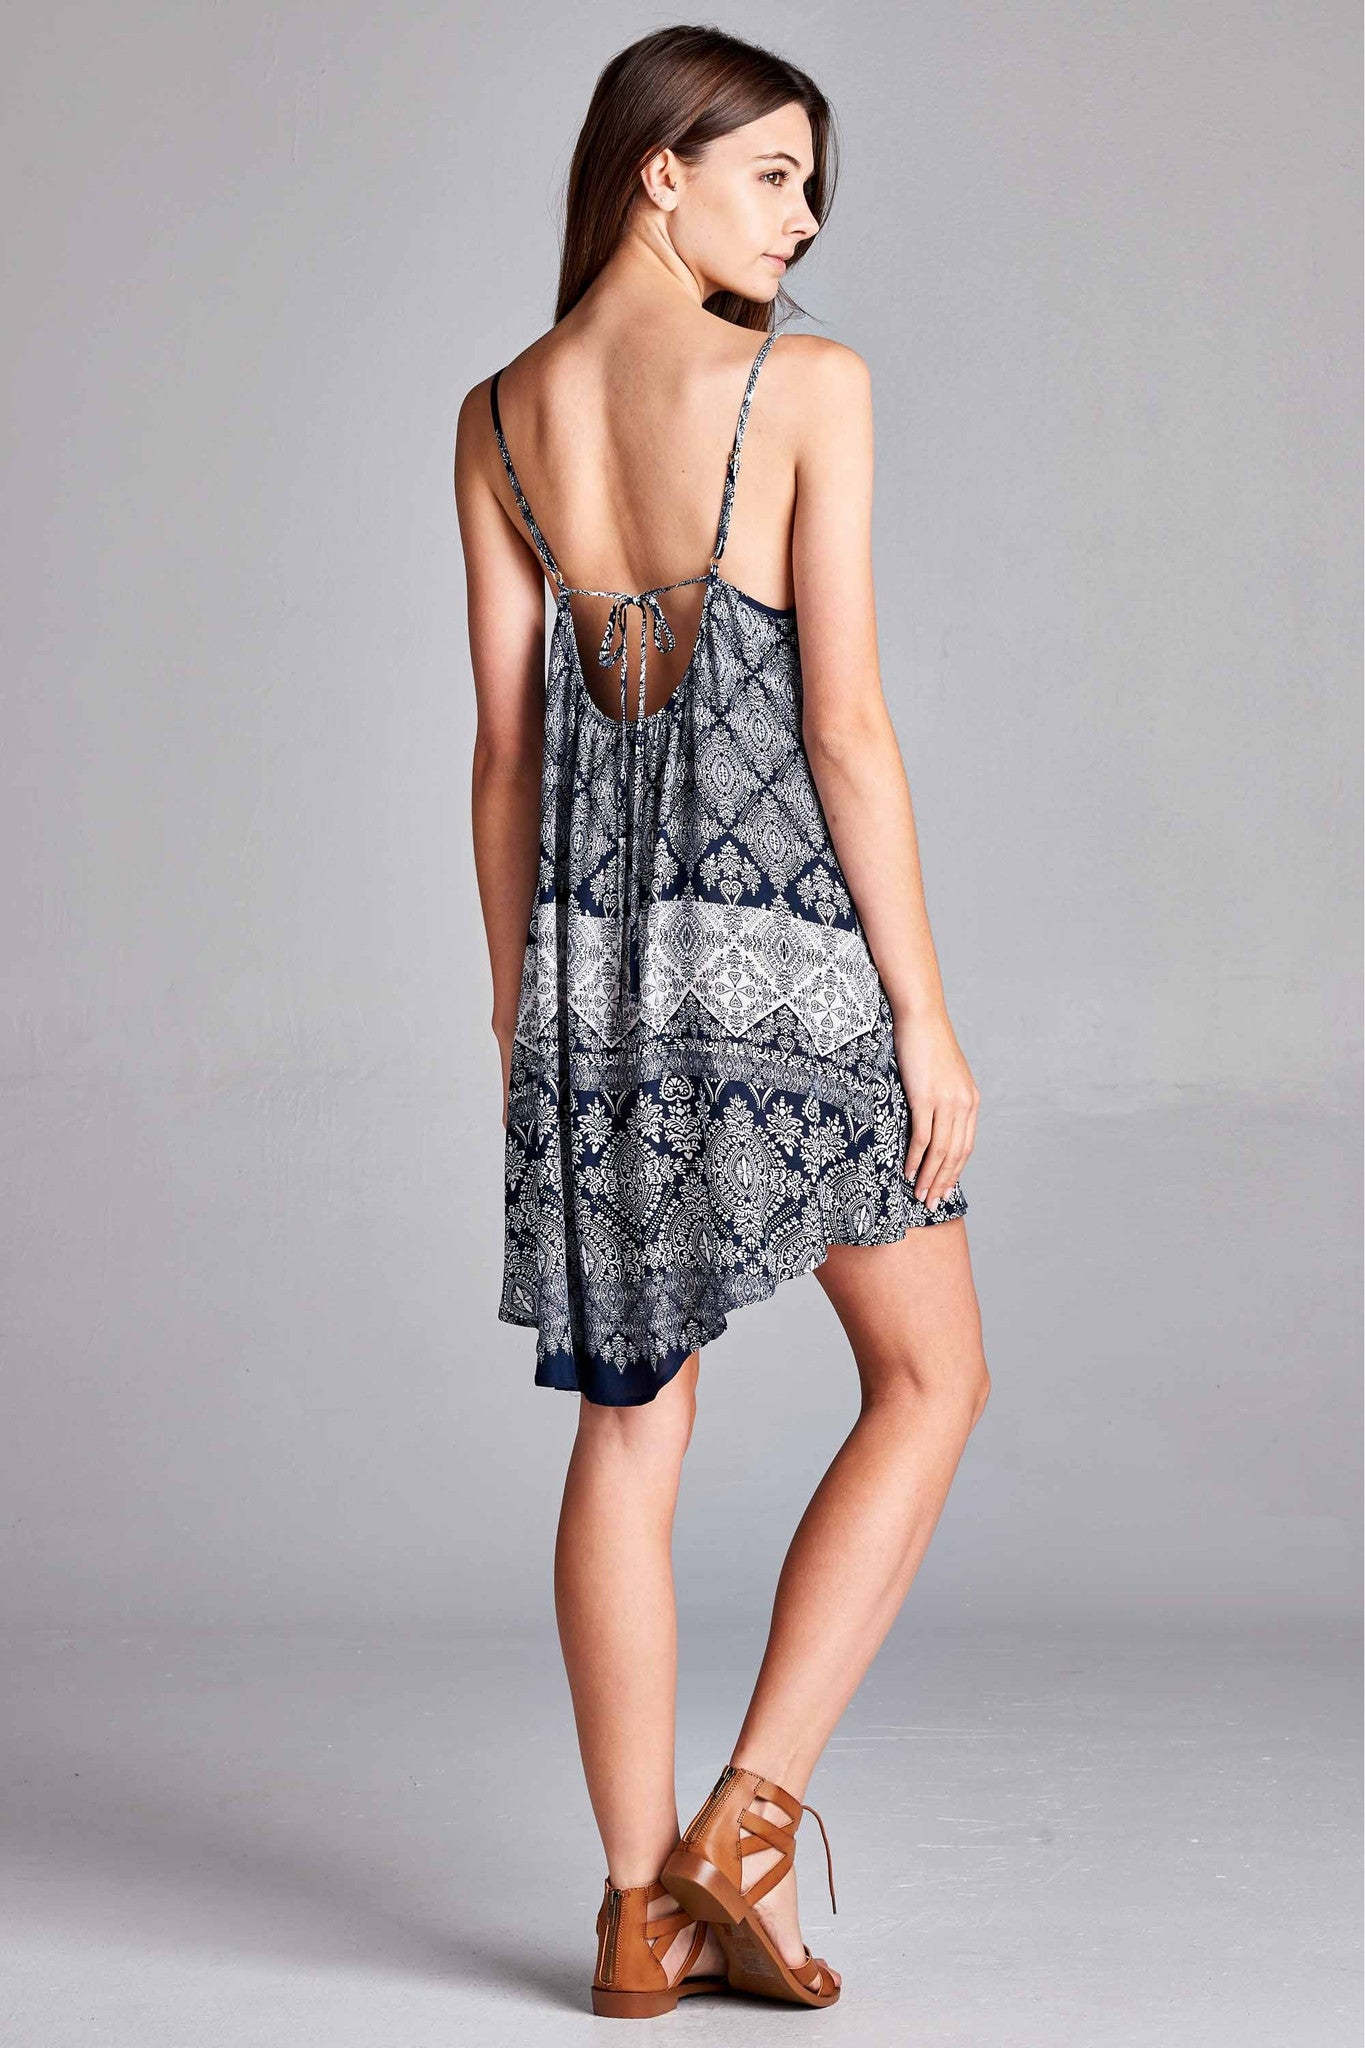 Medallion Print Sundress - Navy & White